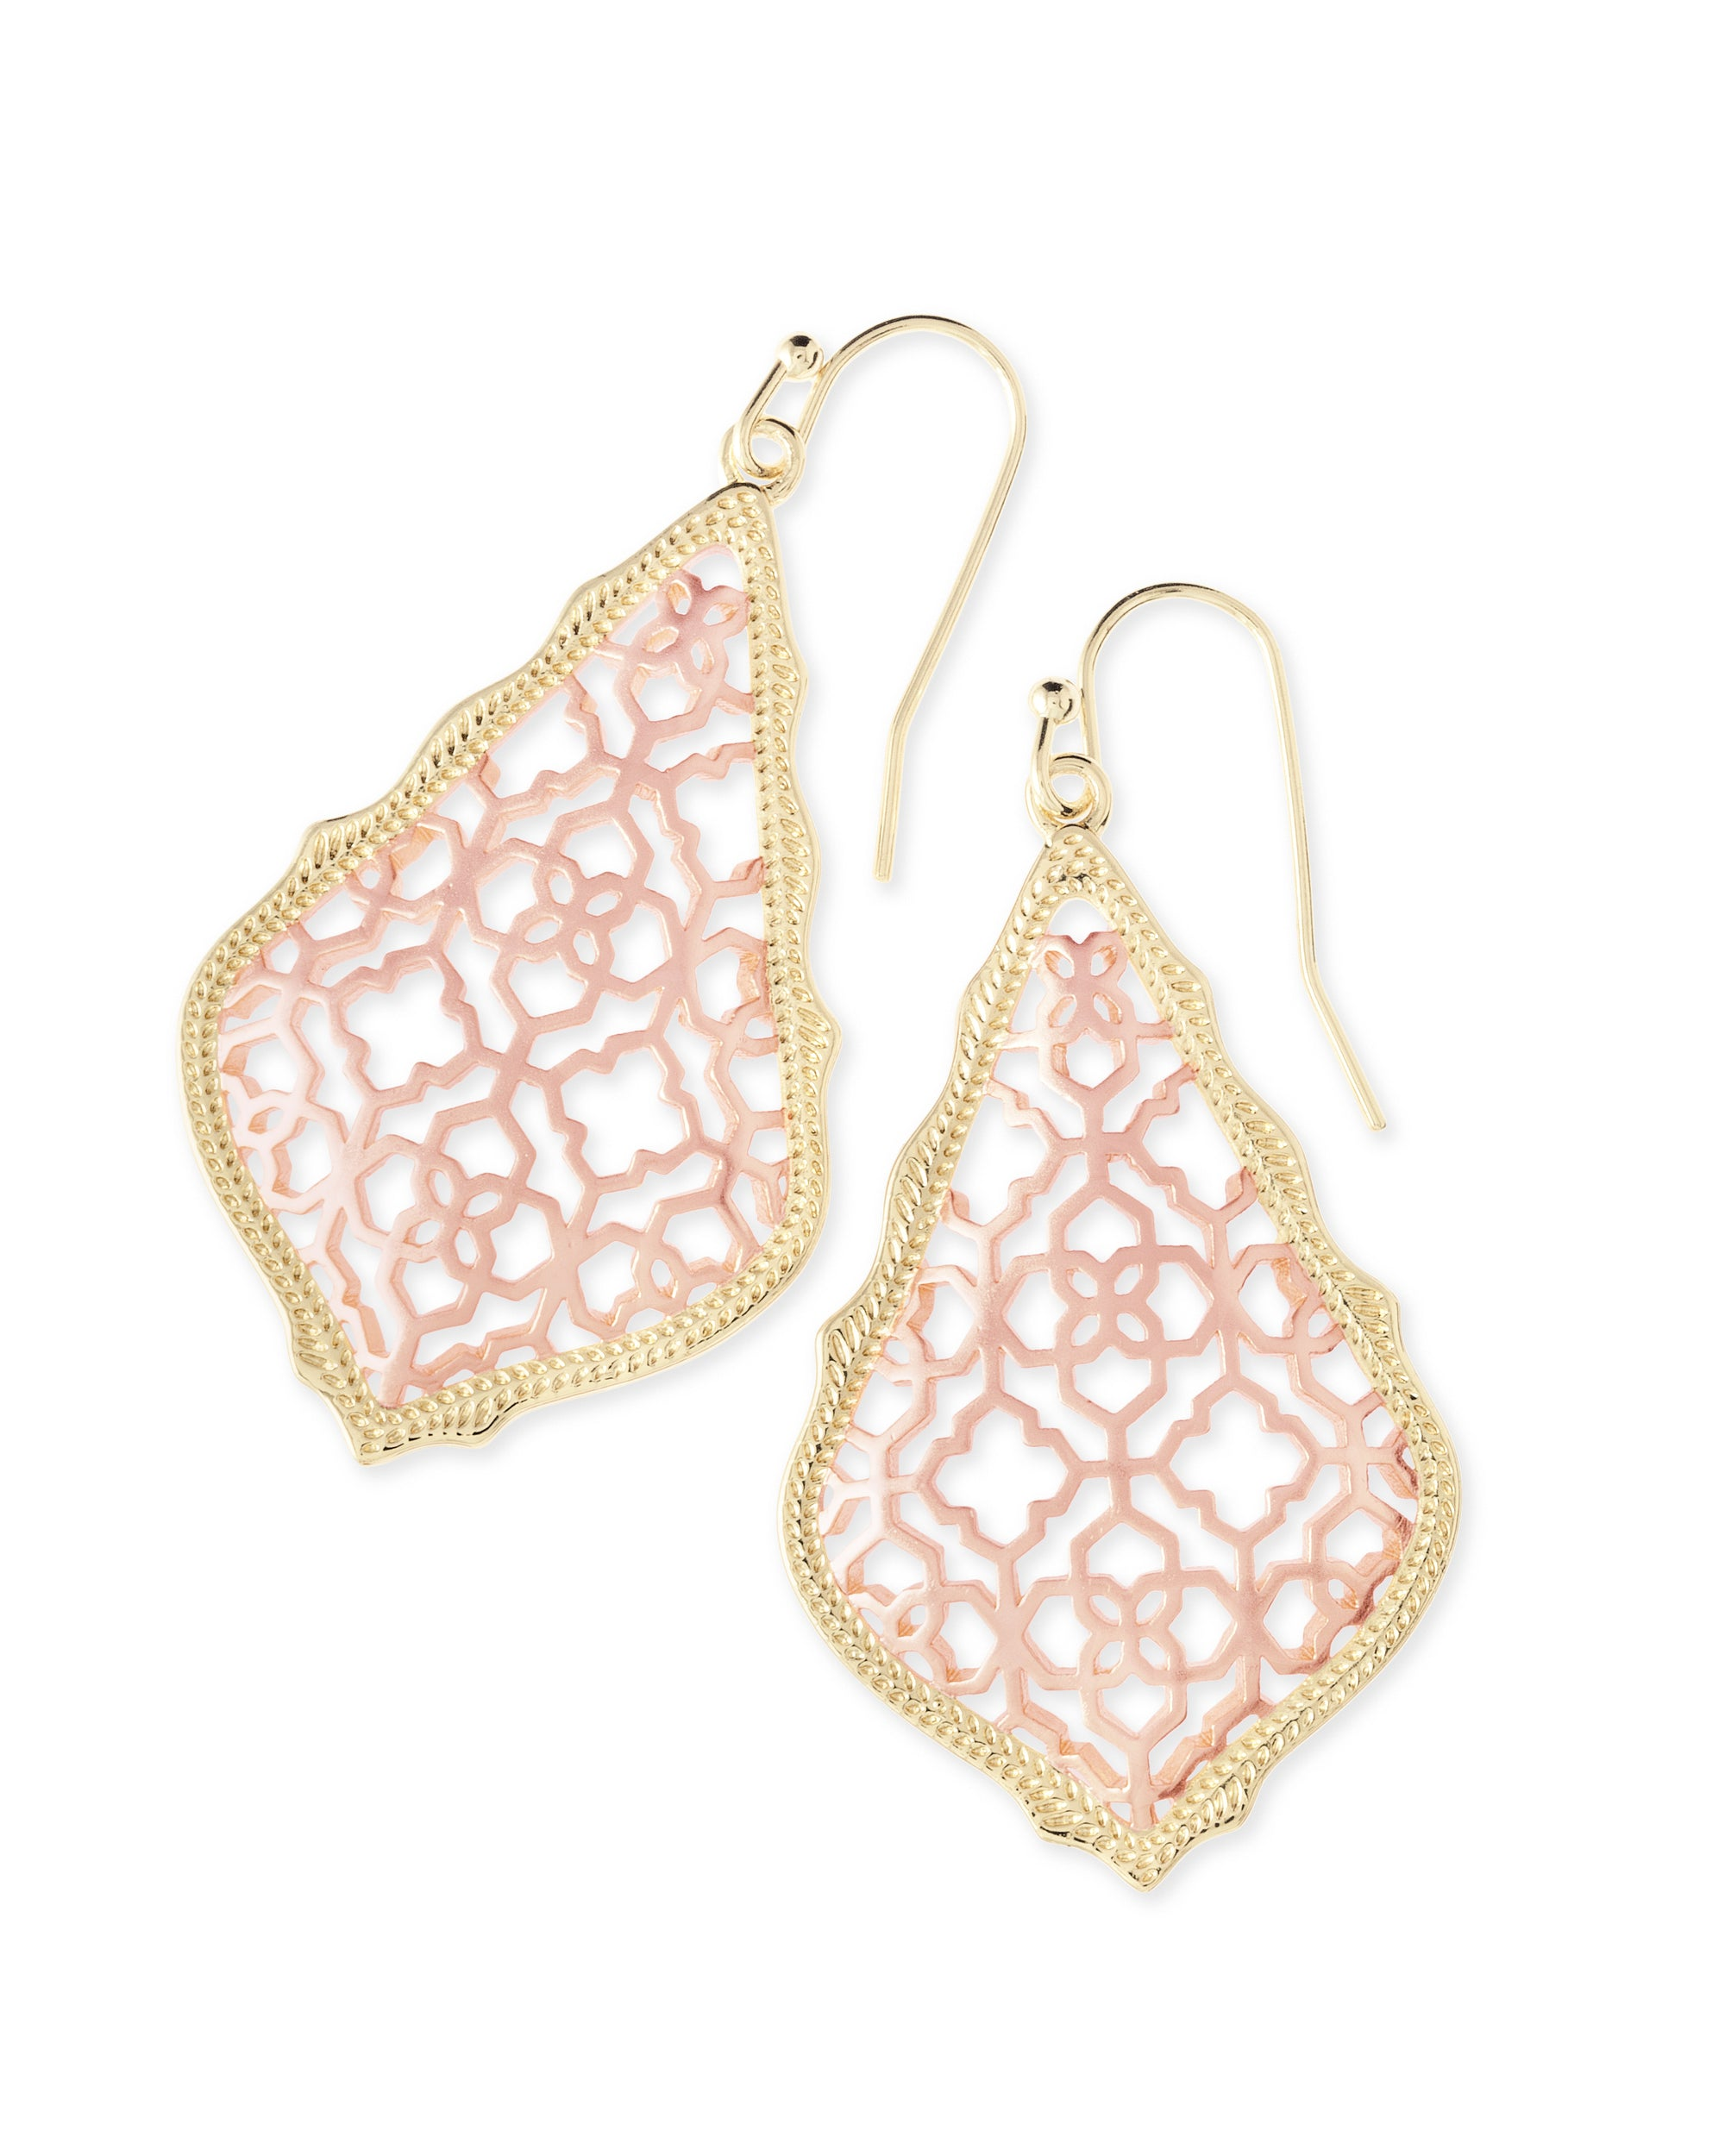 ADDIE EARRING GOLD - RSG FILIGREE MIX